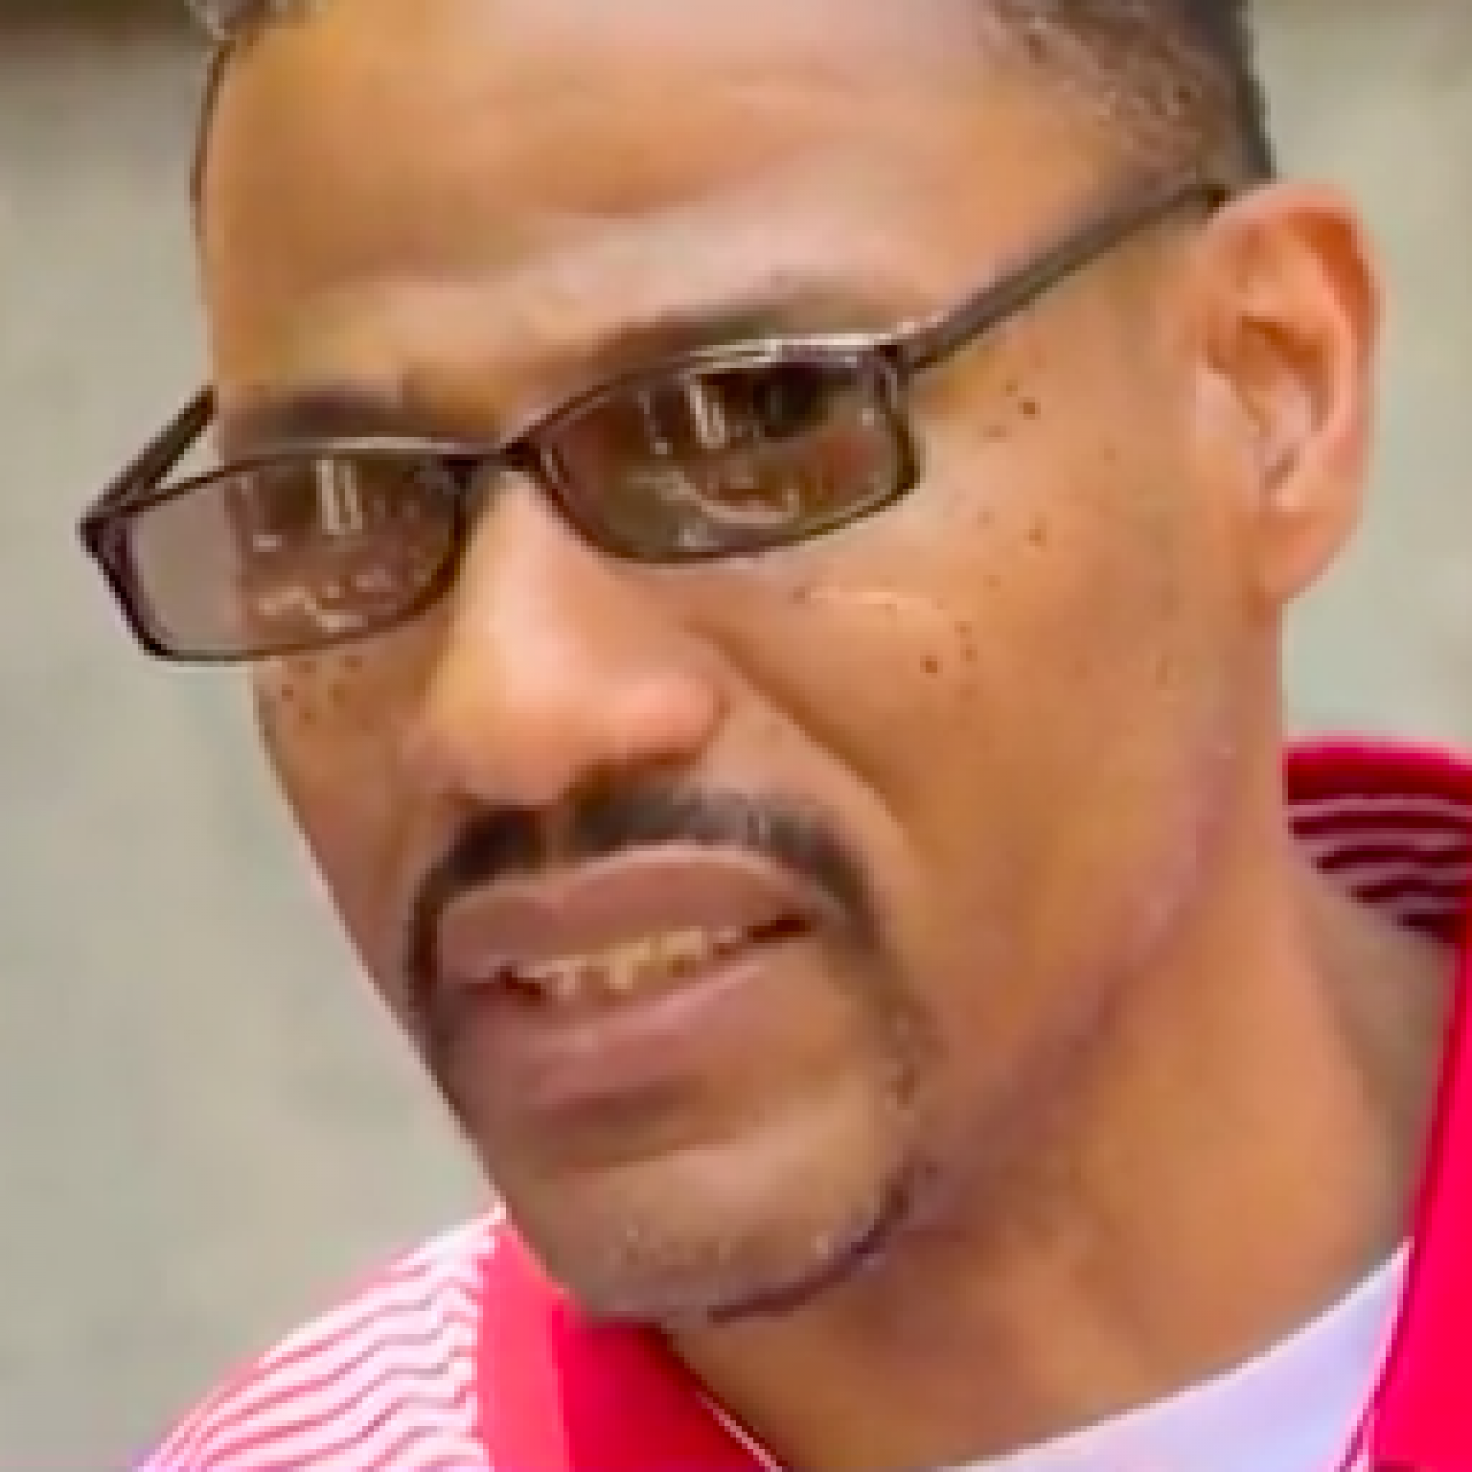 Man Wrongfully Imprisoned For 30 Years Sues Baltimore Police Department For Withholding Evidence Of His Innocence